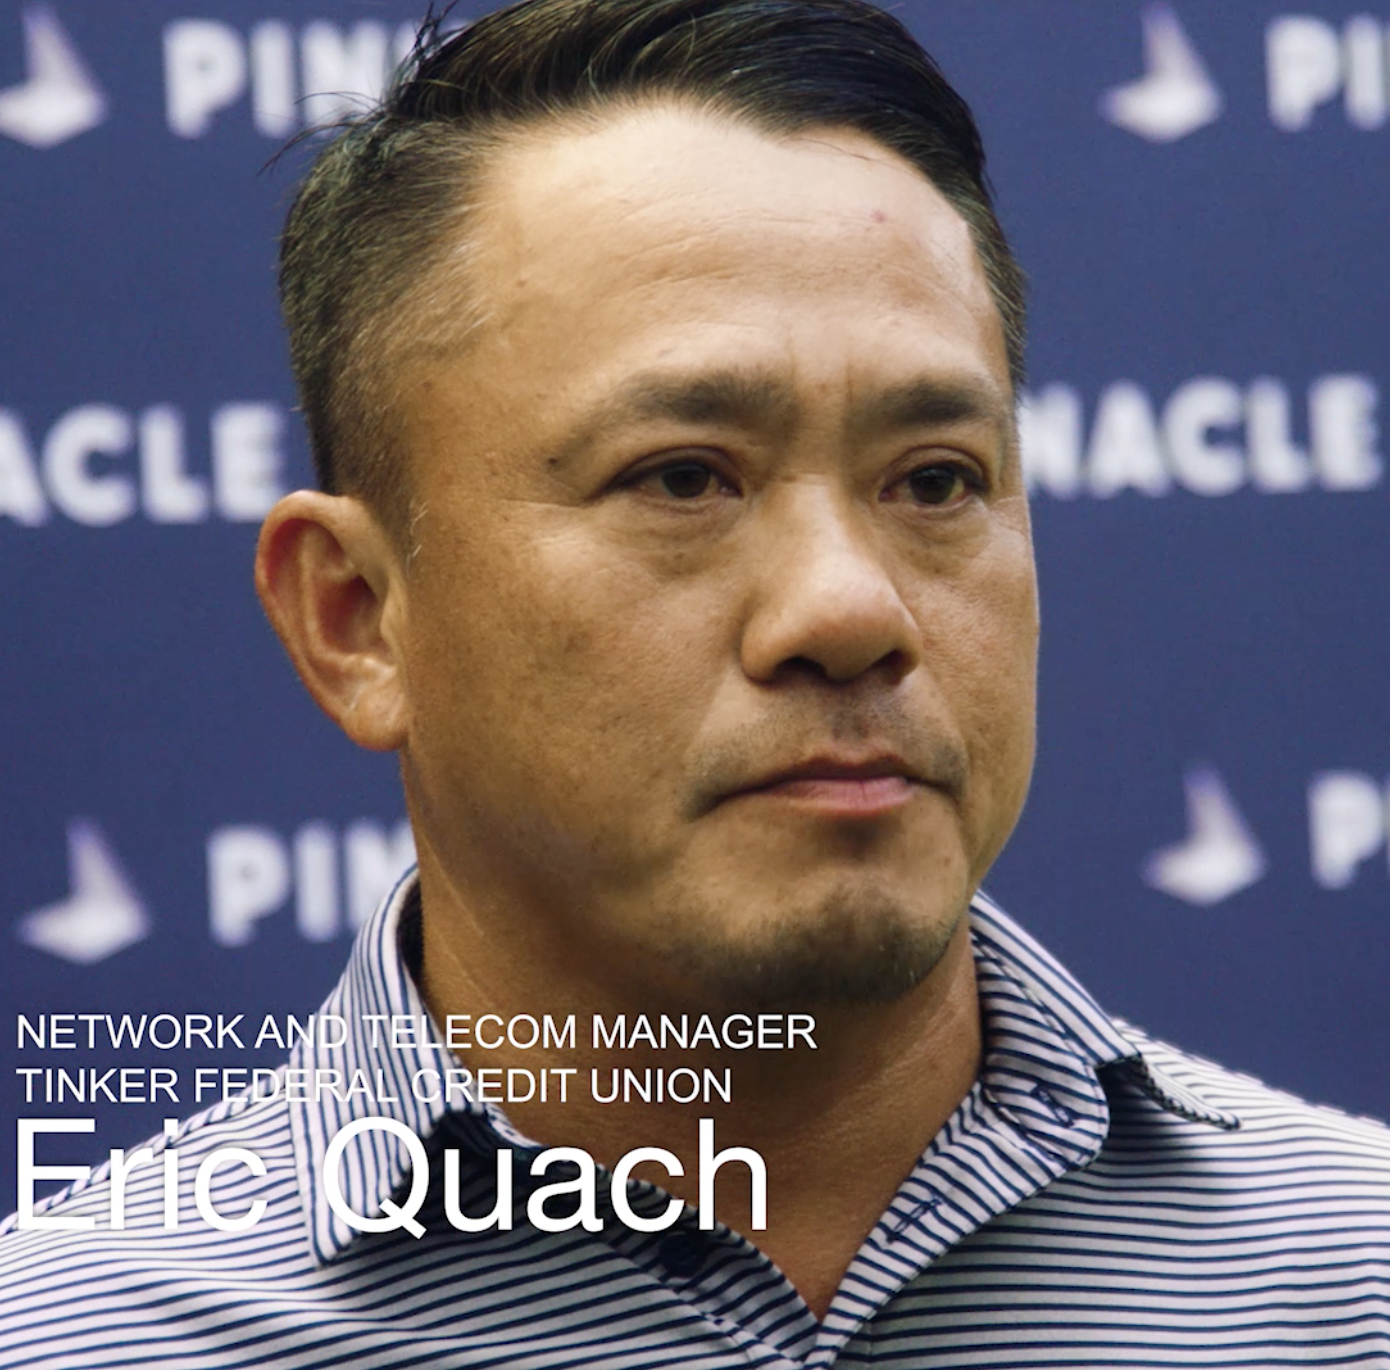 Eric Quach, IT leader Tinker Federal Credit Union and customer of Pinnacle